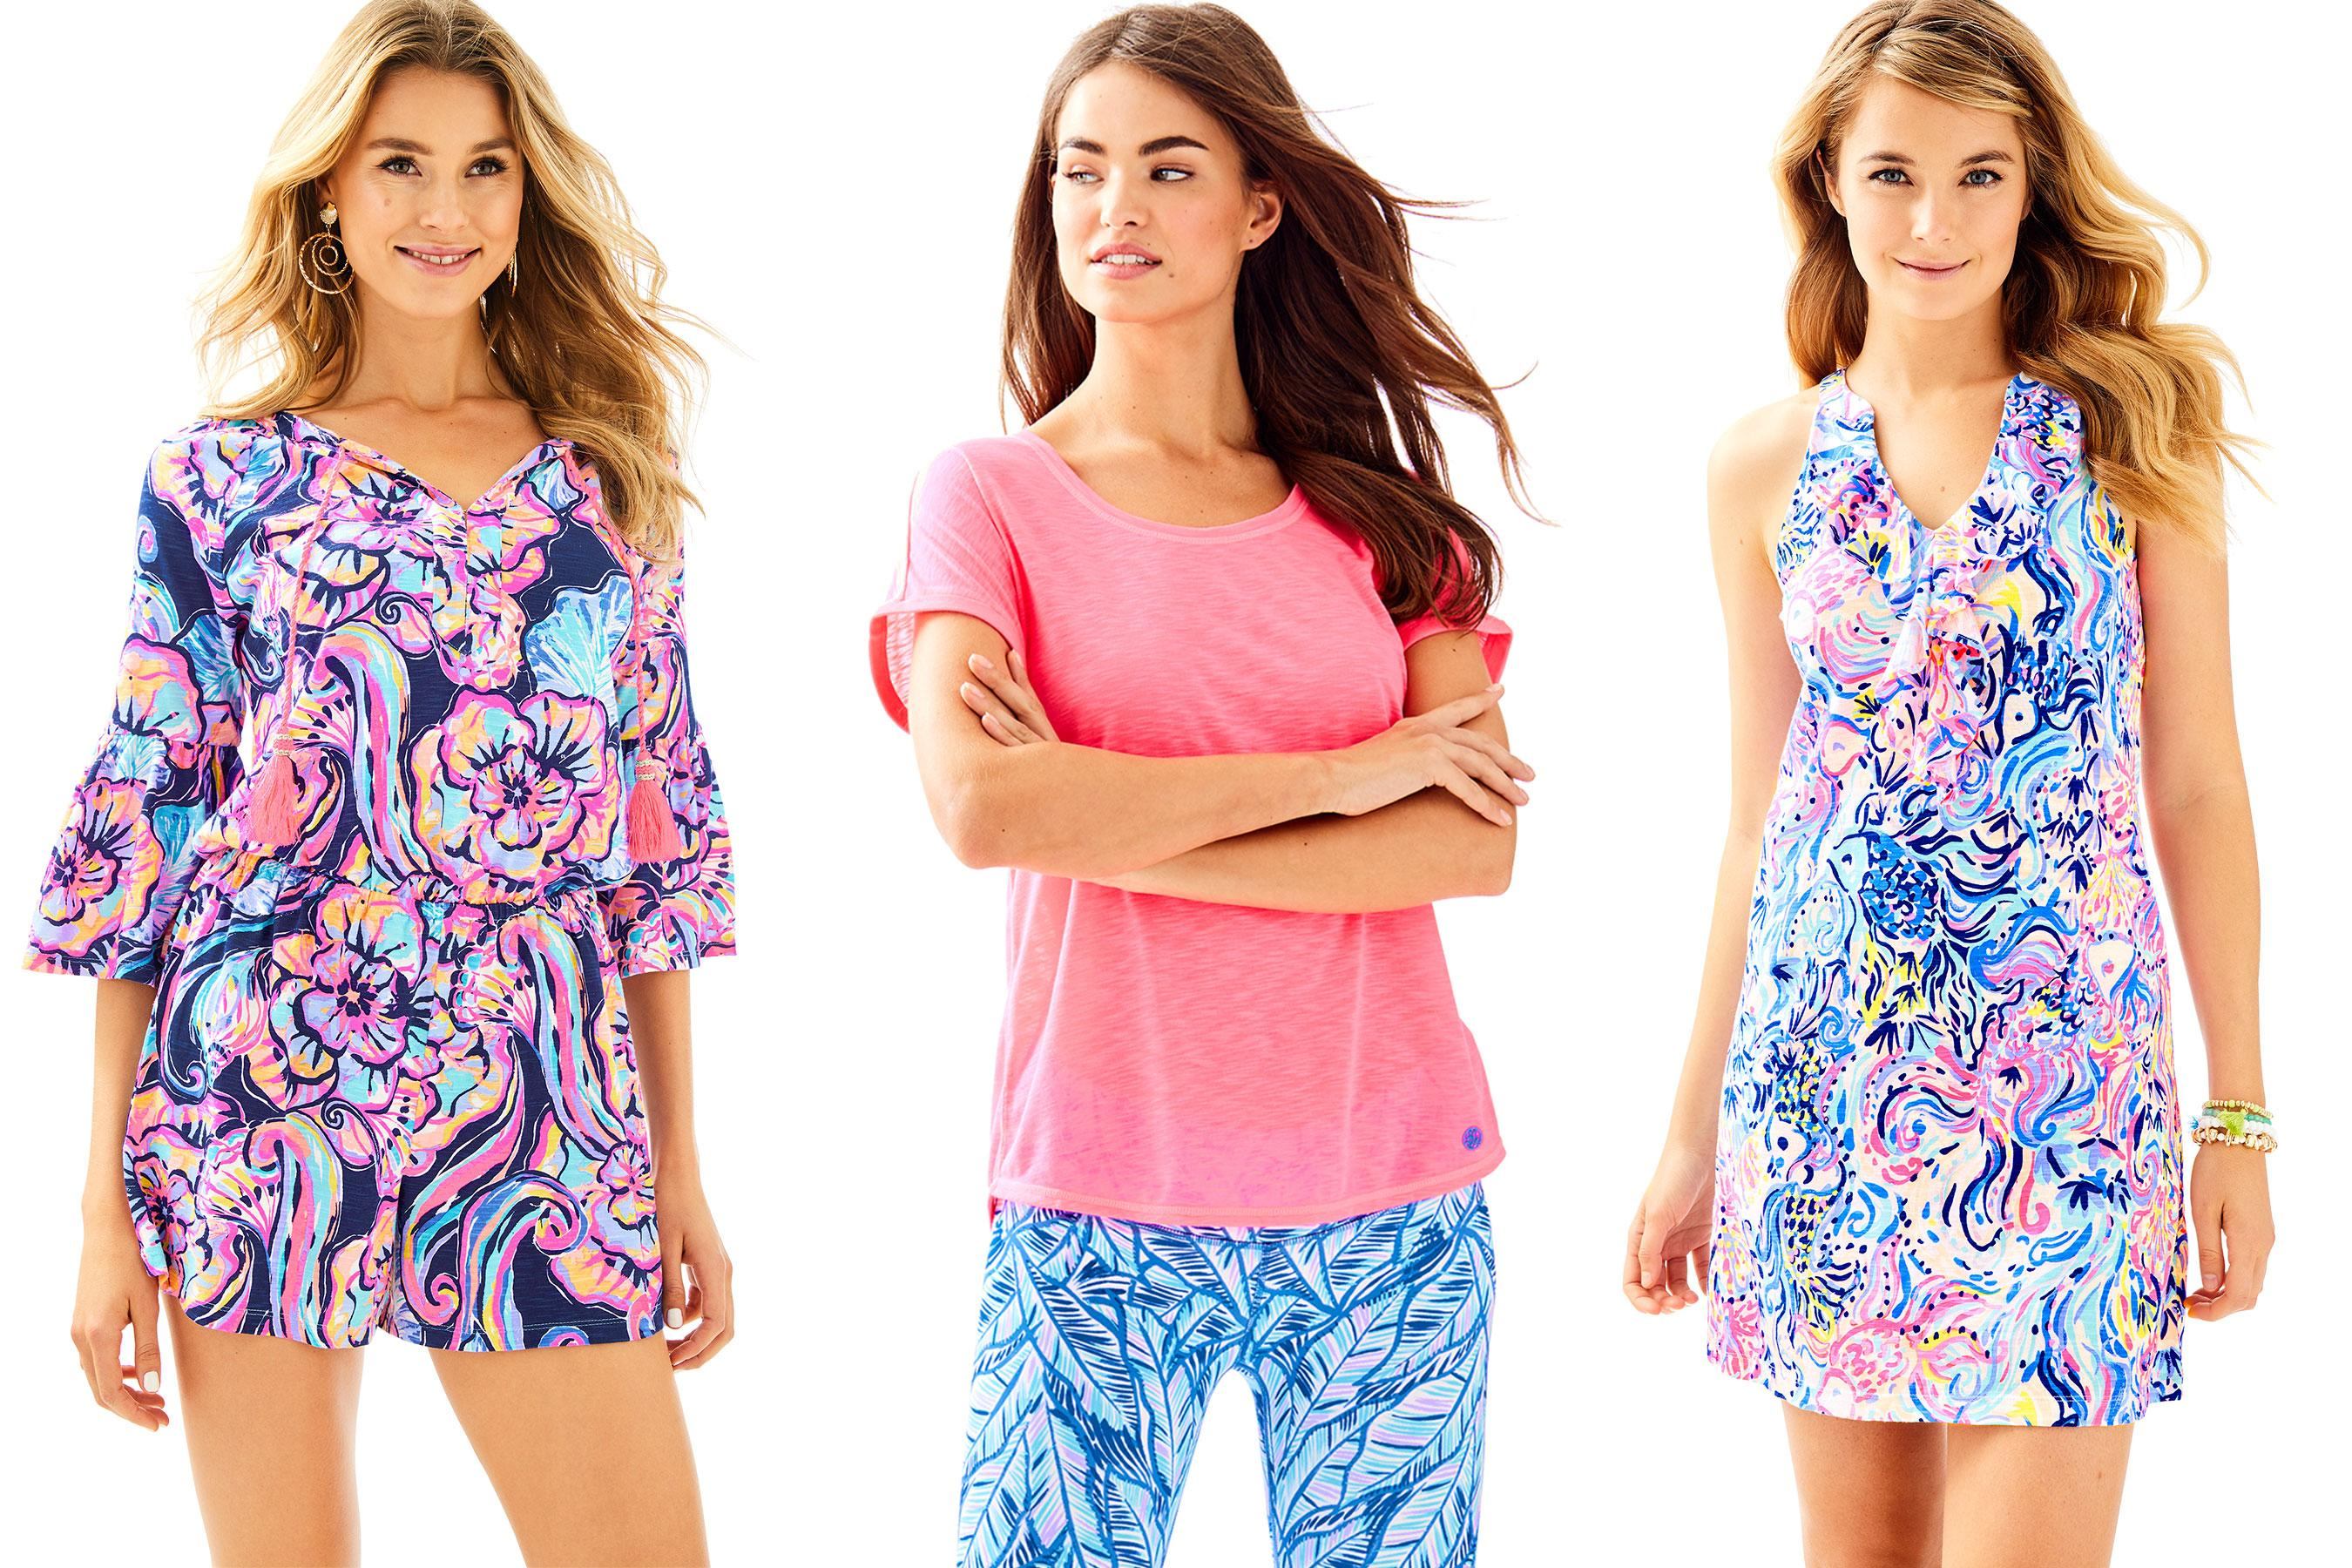 b1d3a21cd508eb The 5 Cutest Styles to Shop at Lilly Pulitzer - Plus, Get a Sneak Peek of  the After Party Sale!